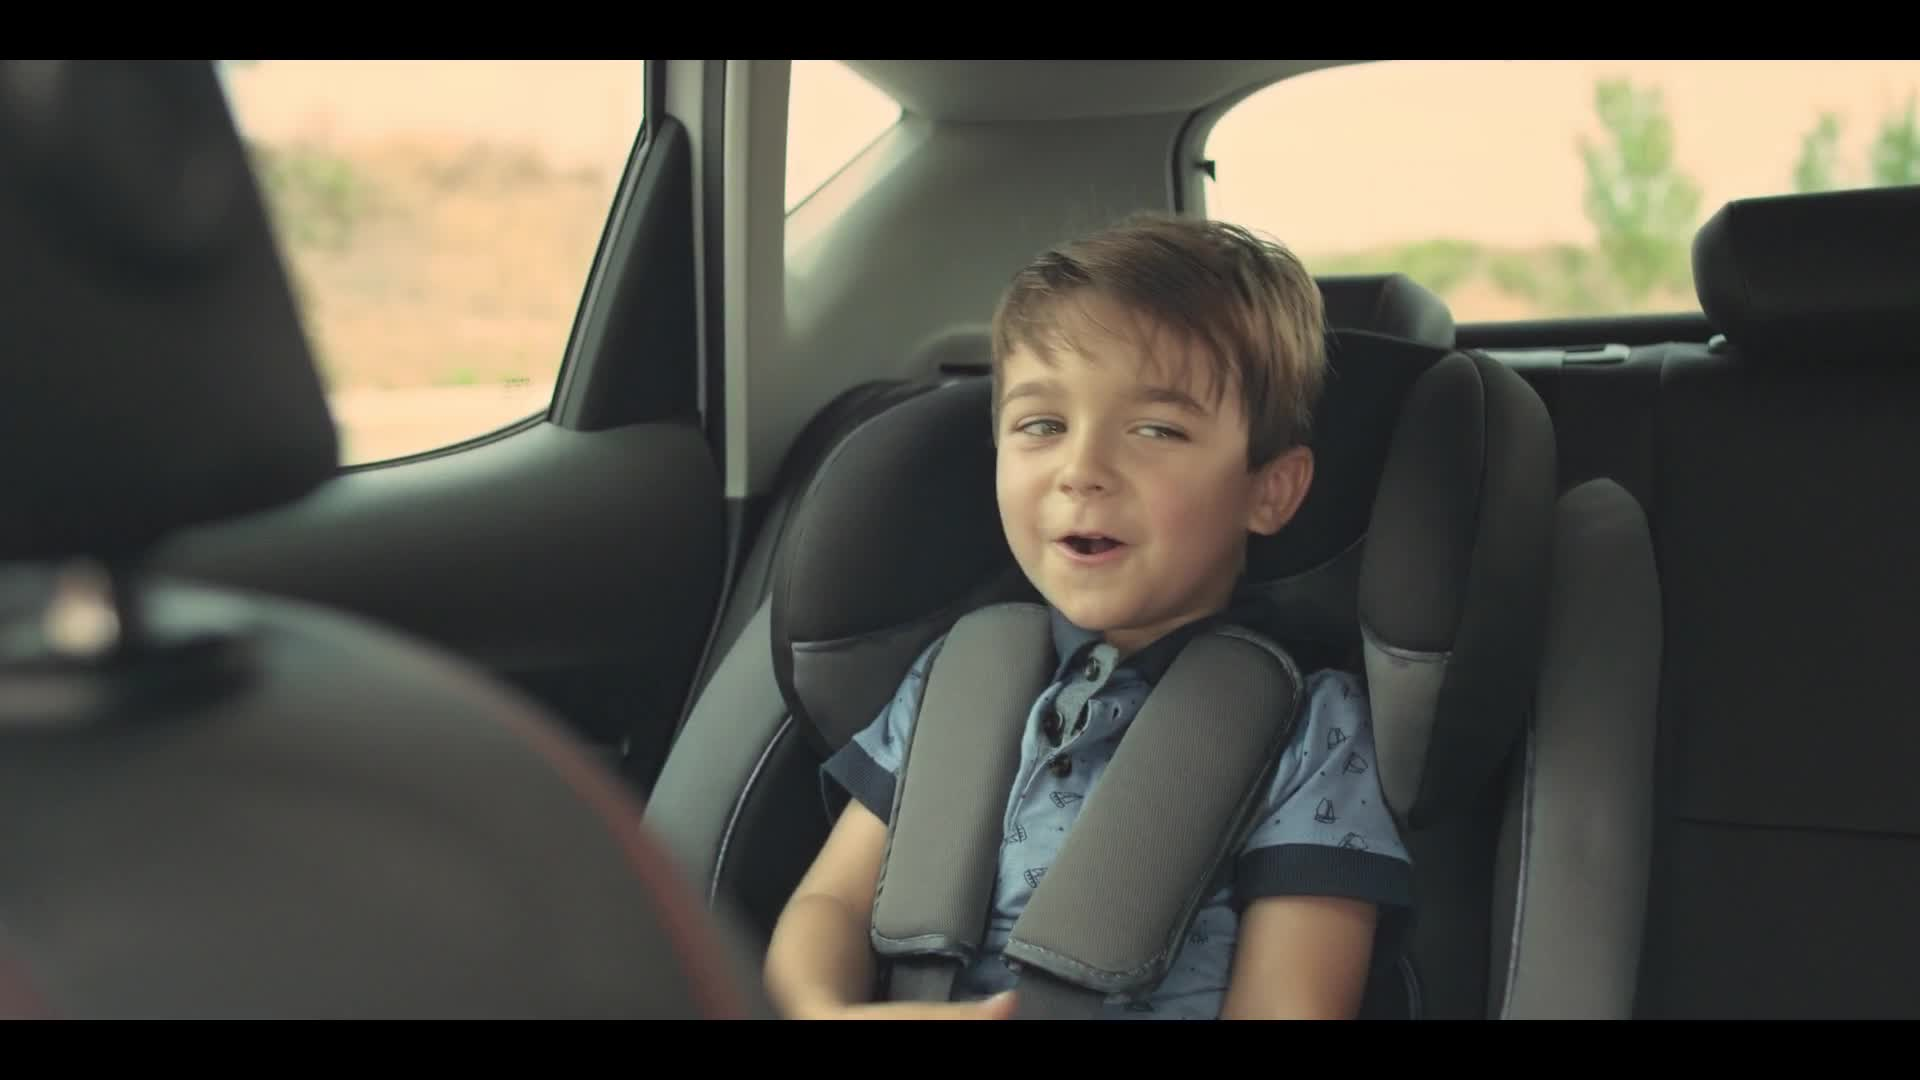 Watch free video SEAT Leon Commercial: To the Right